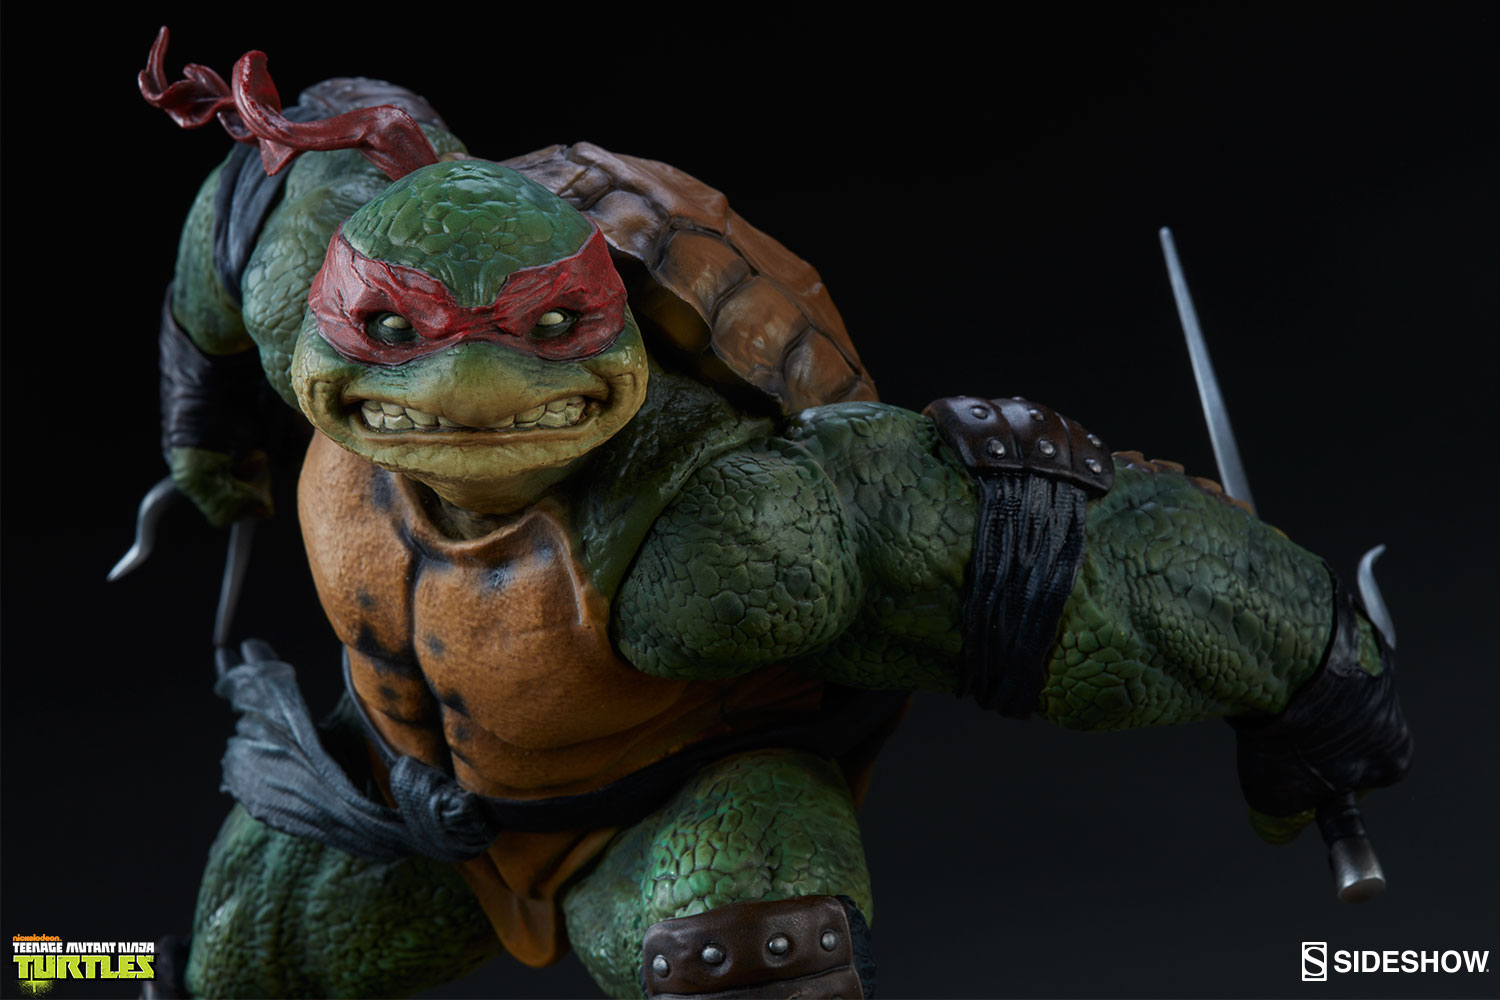 TMNT Raphael Statue by Sideshow Collectibles   Sideshow ...  TMNT Raphael St...